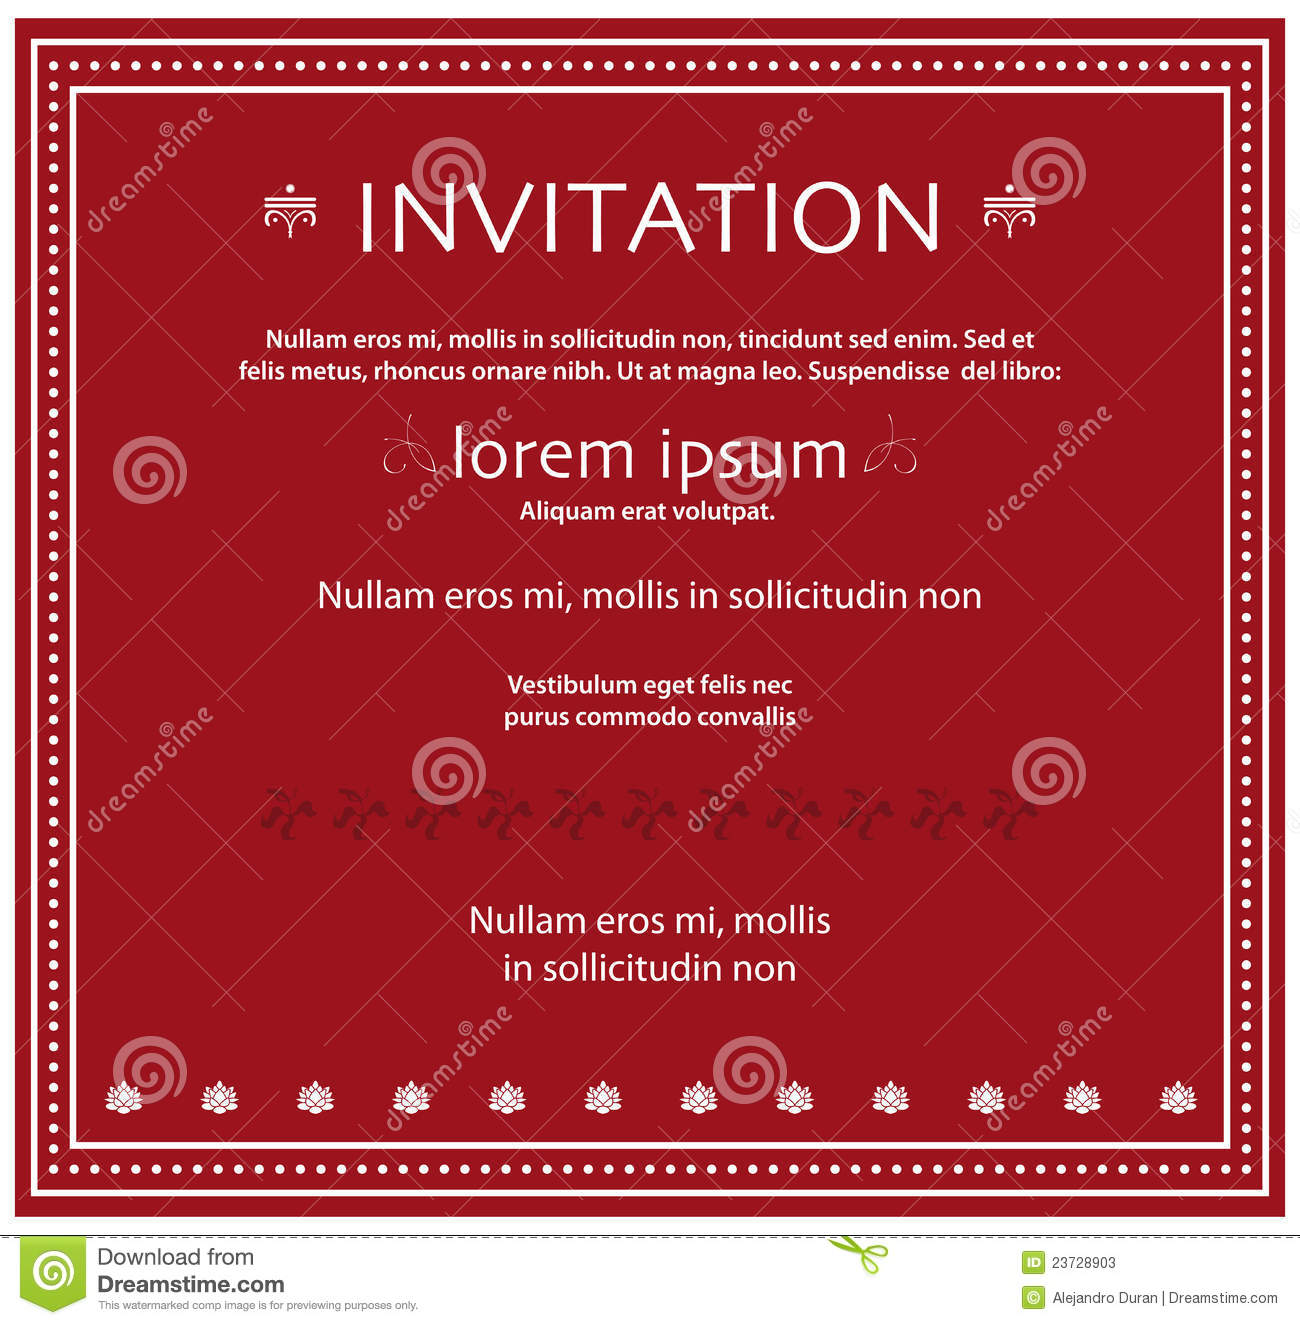 Event Invitation Photos Image 23728903 – Event Invitation